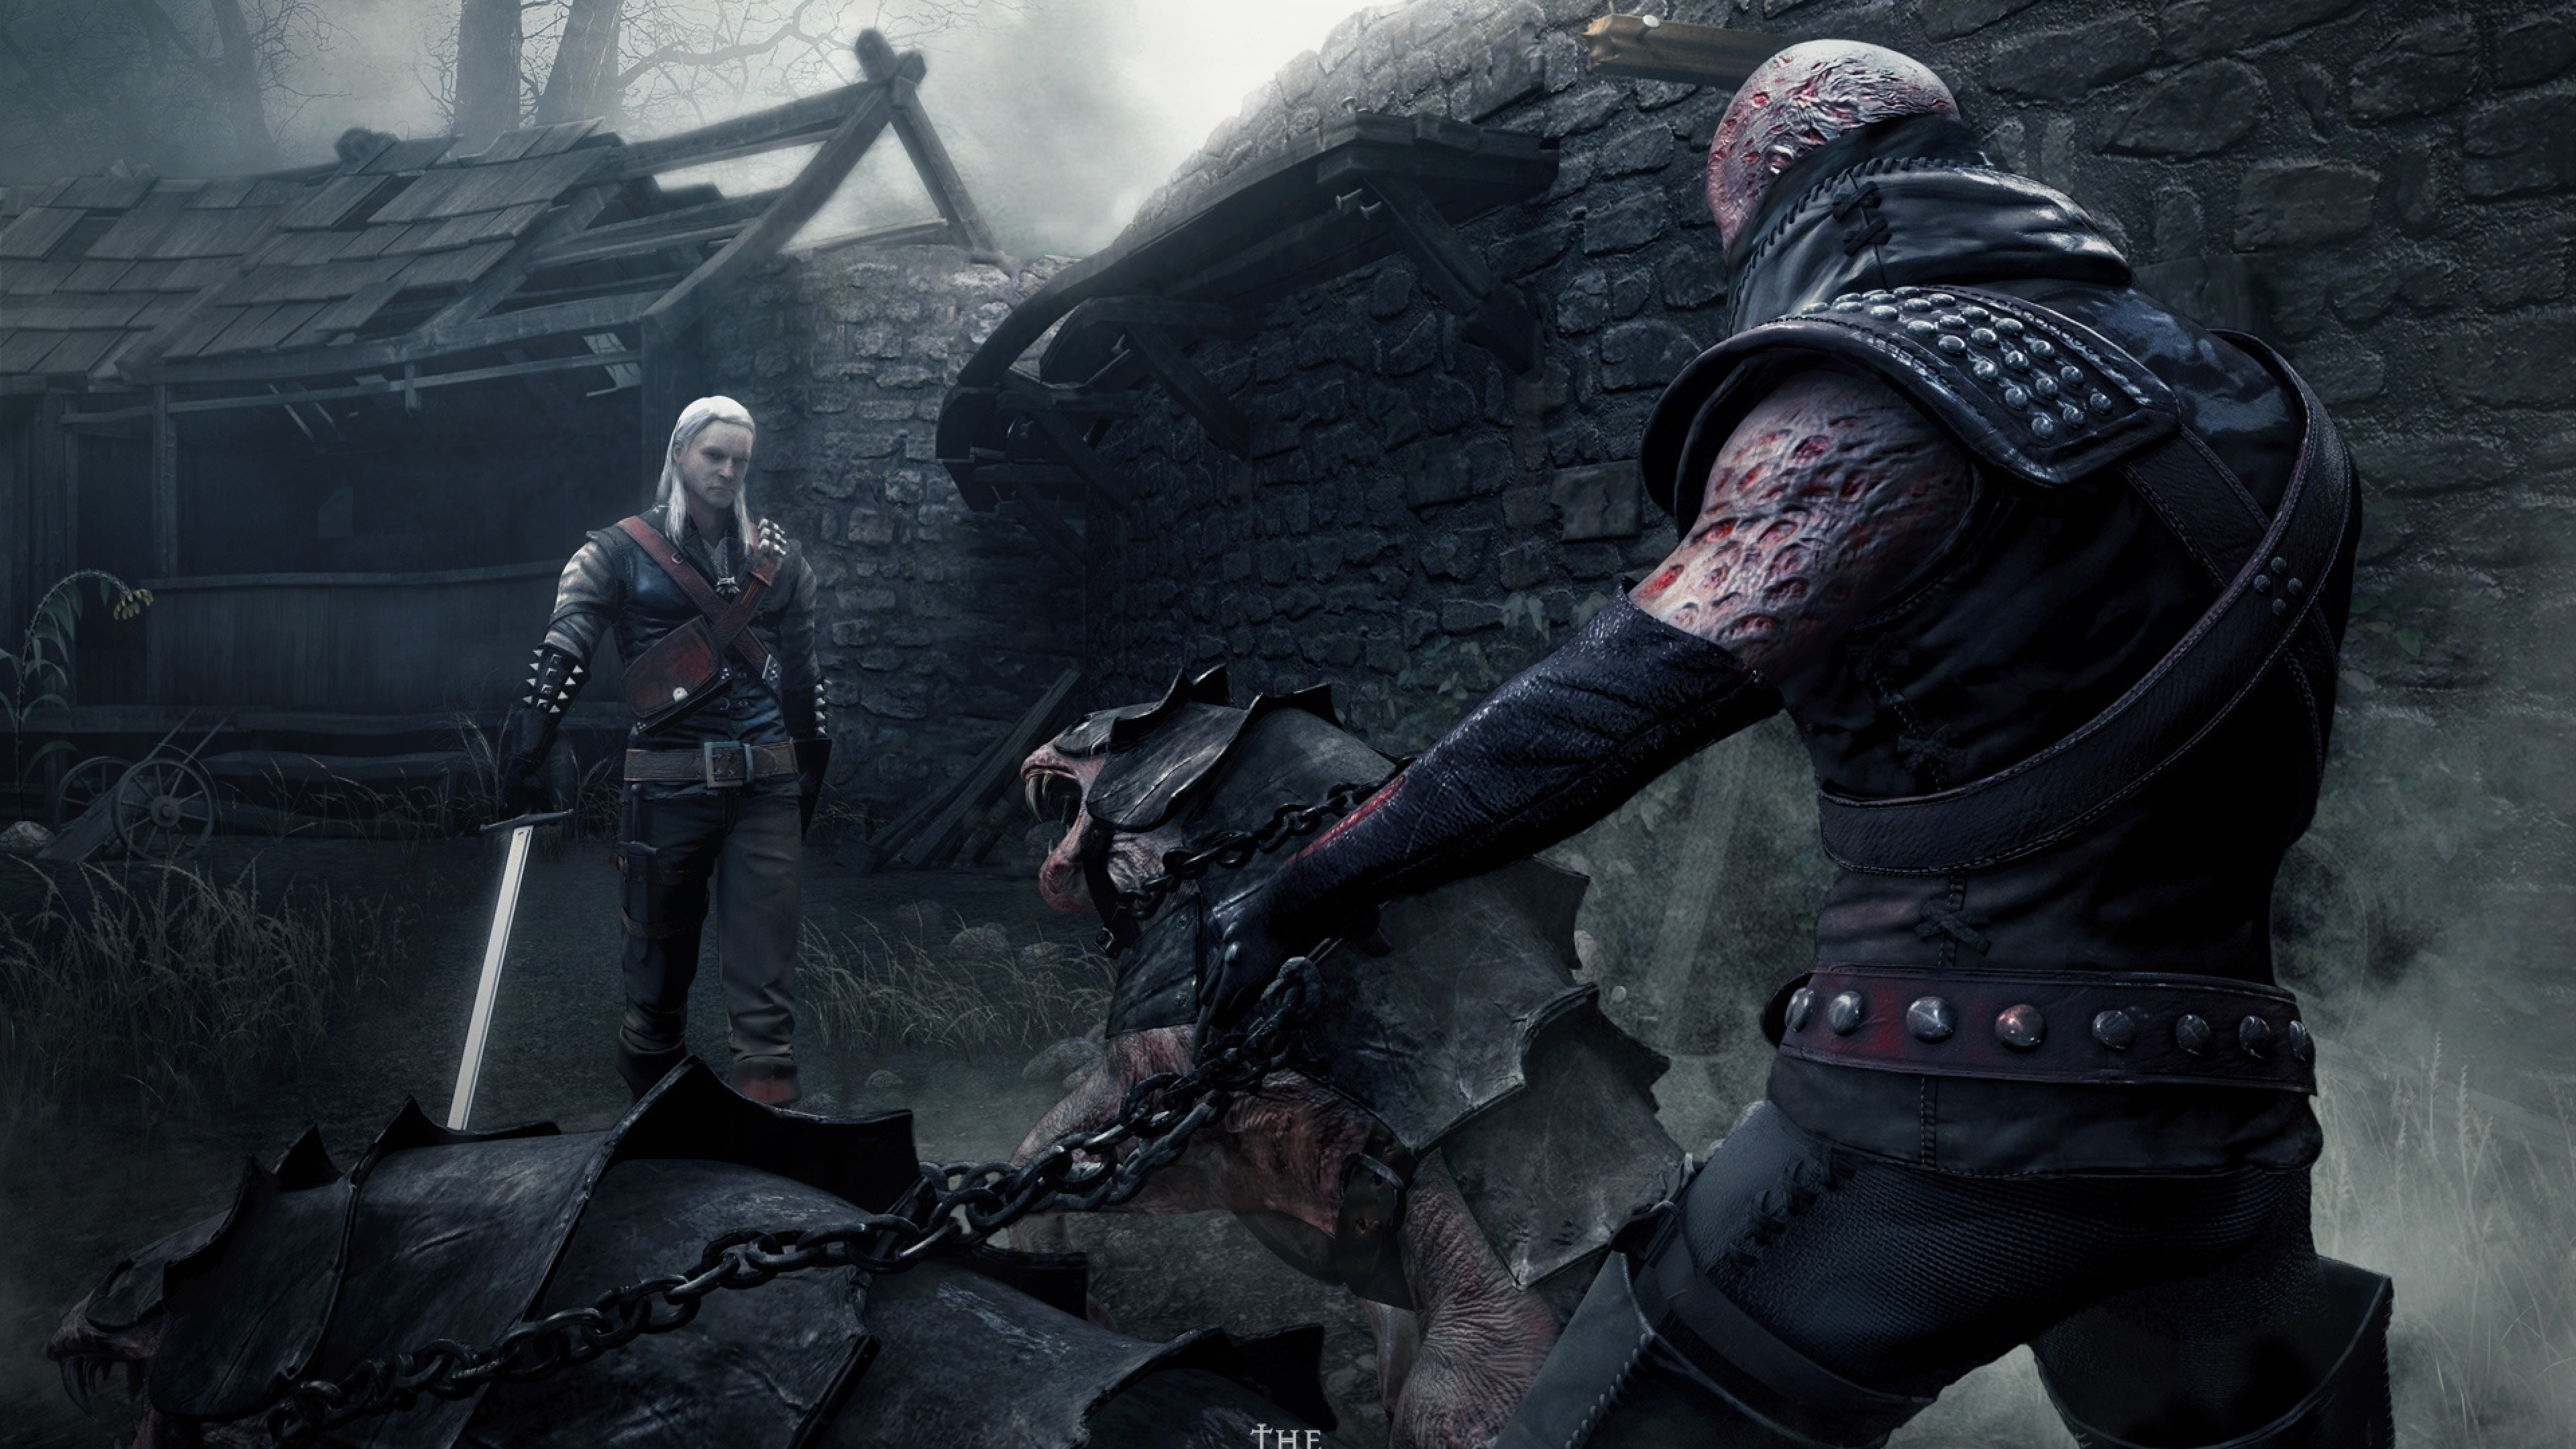 Free Download Download Wallpaper 3840x2160 The Witcher Warrior